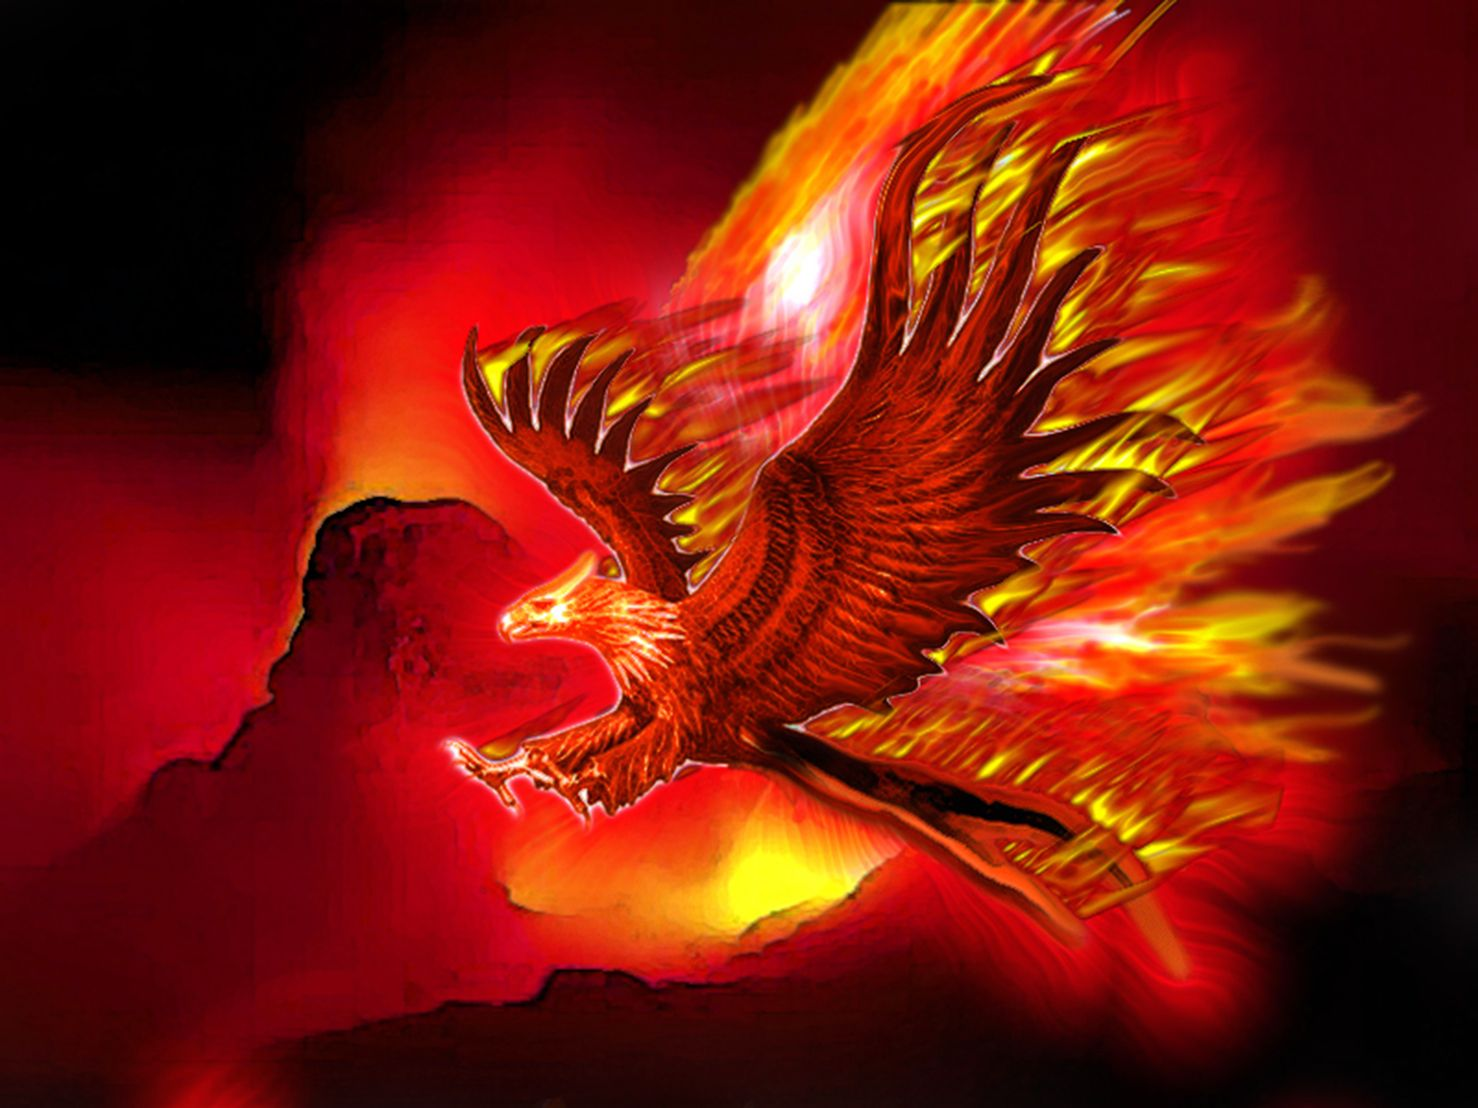 Images Of Fire Phoenix - Google Search